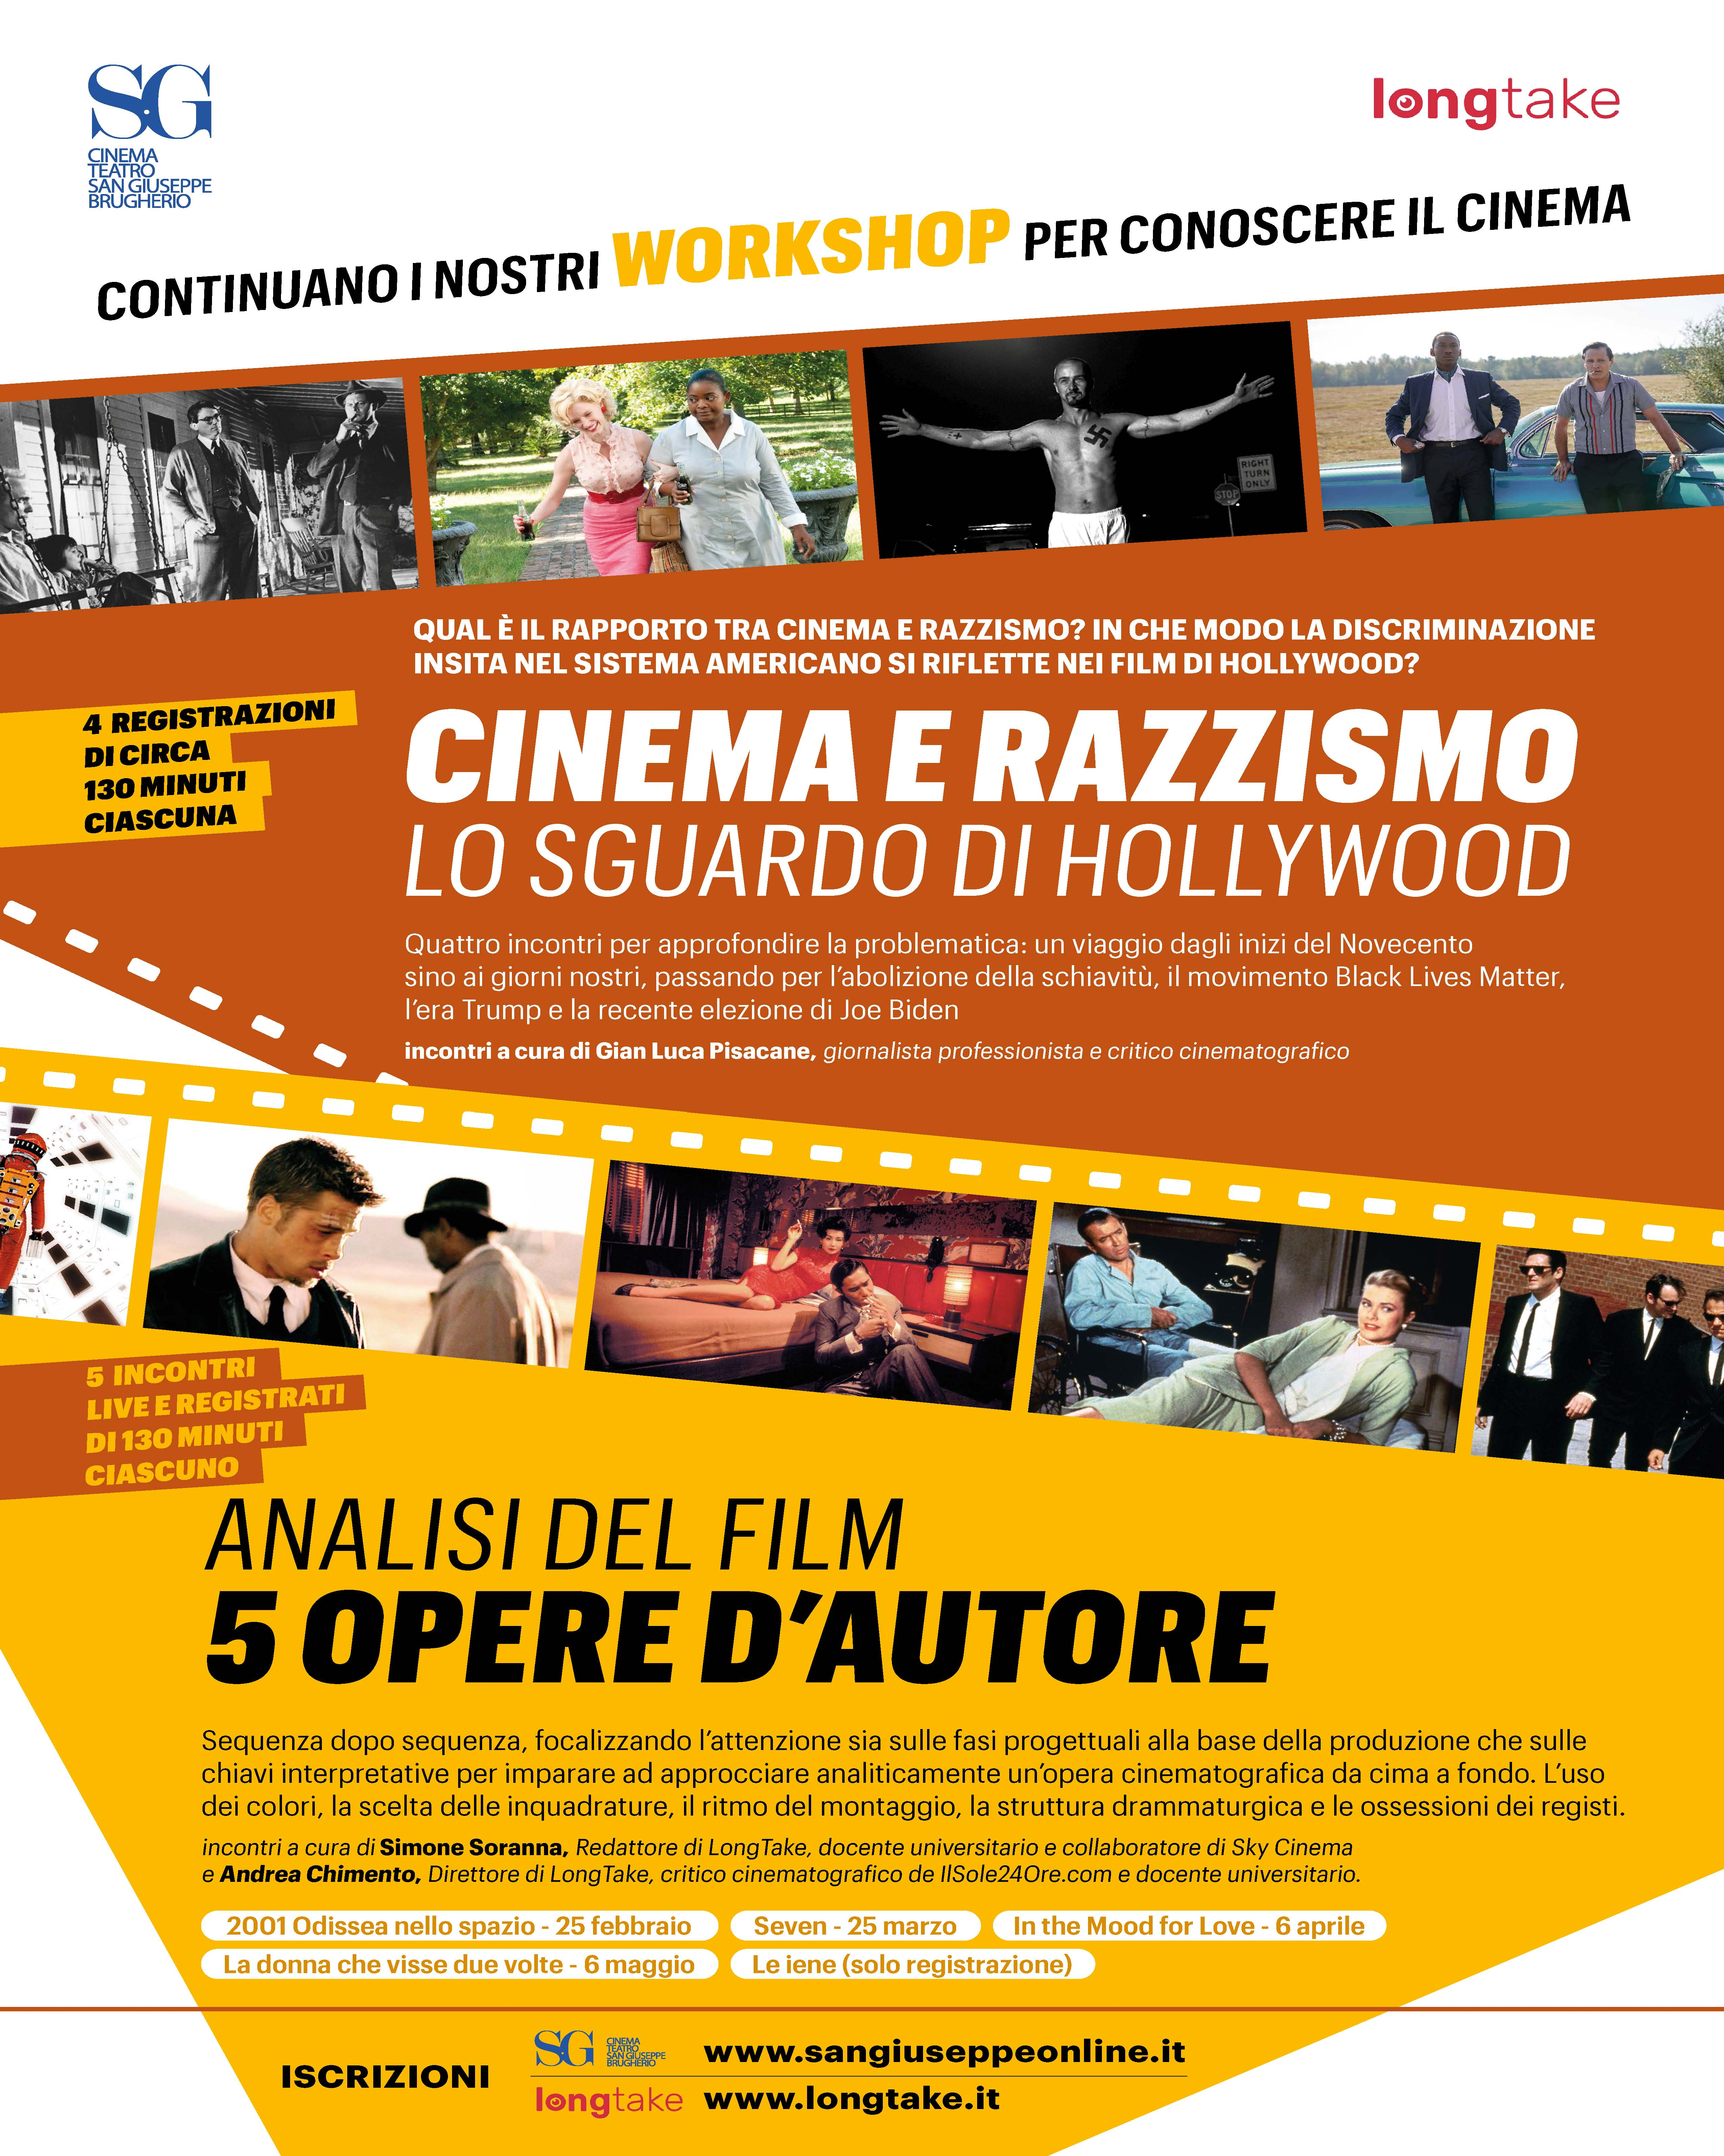 "Proseguono i workshop live streaming sul cinema a cura di LongTake: ""Cinema e razzismo: lo sguardo di Hollywood""  e  ""Analisi del film: cinque opere d'autore"""